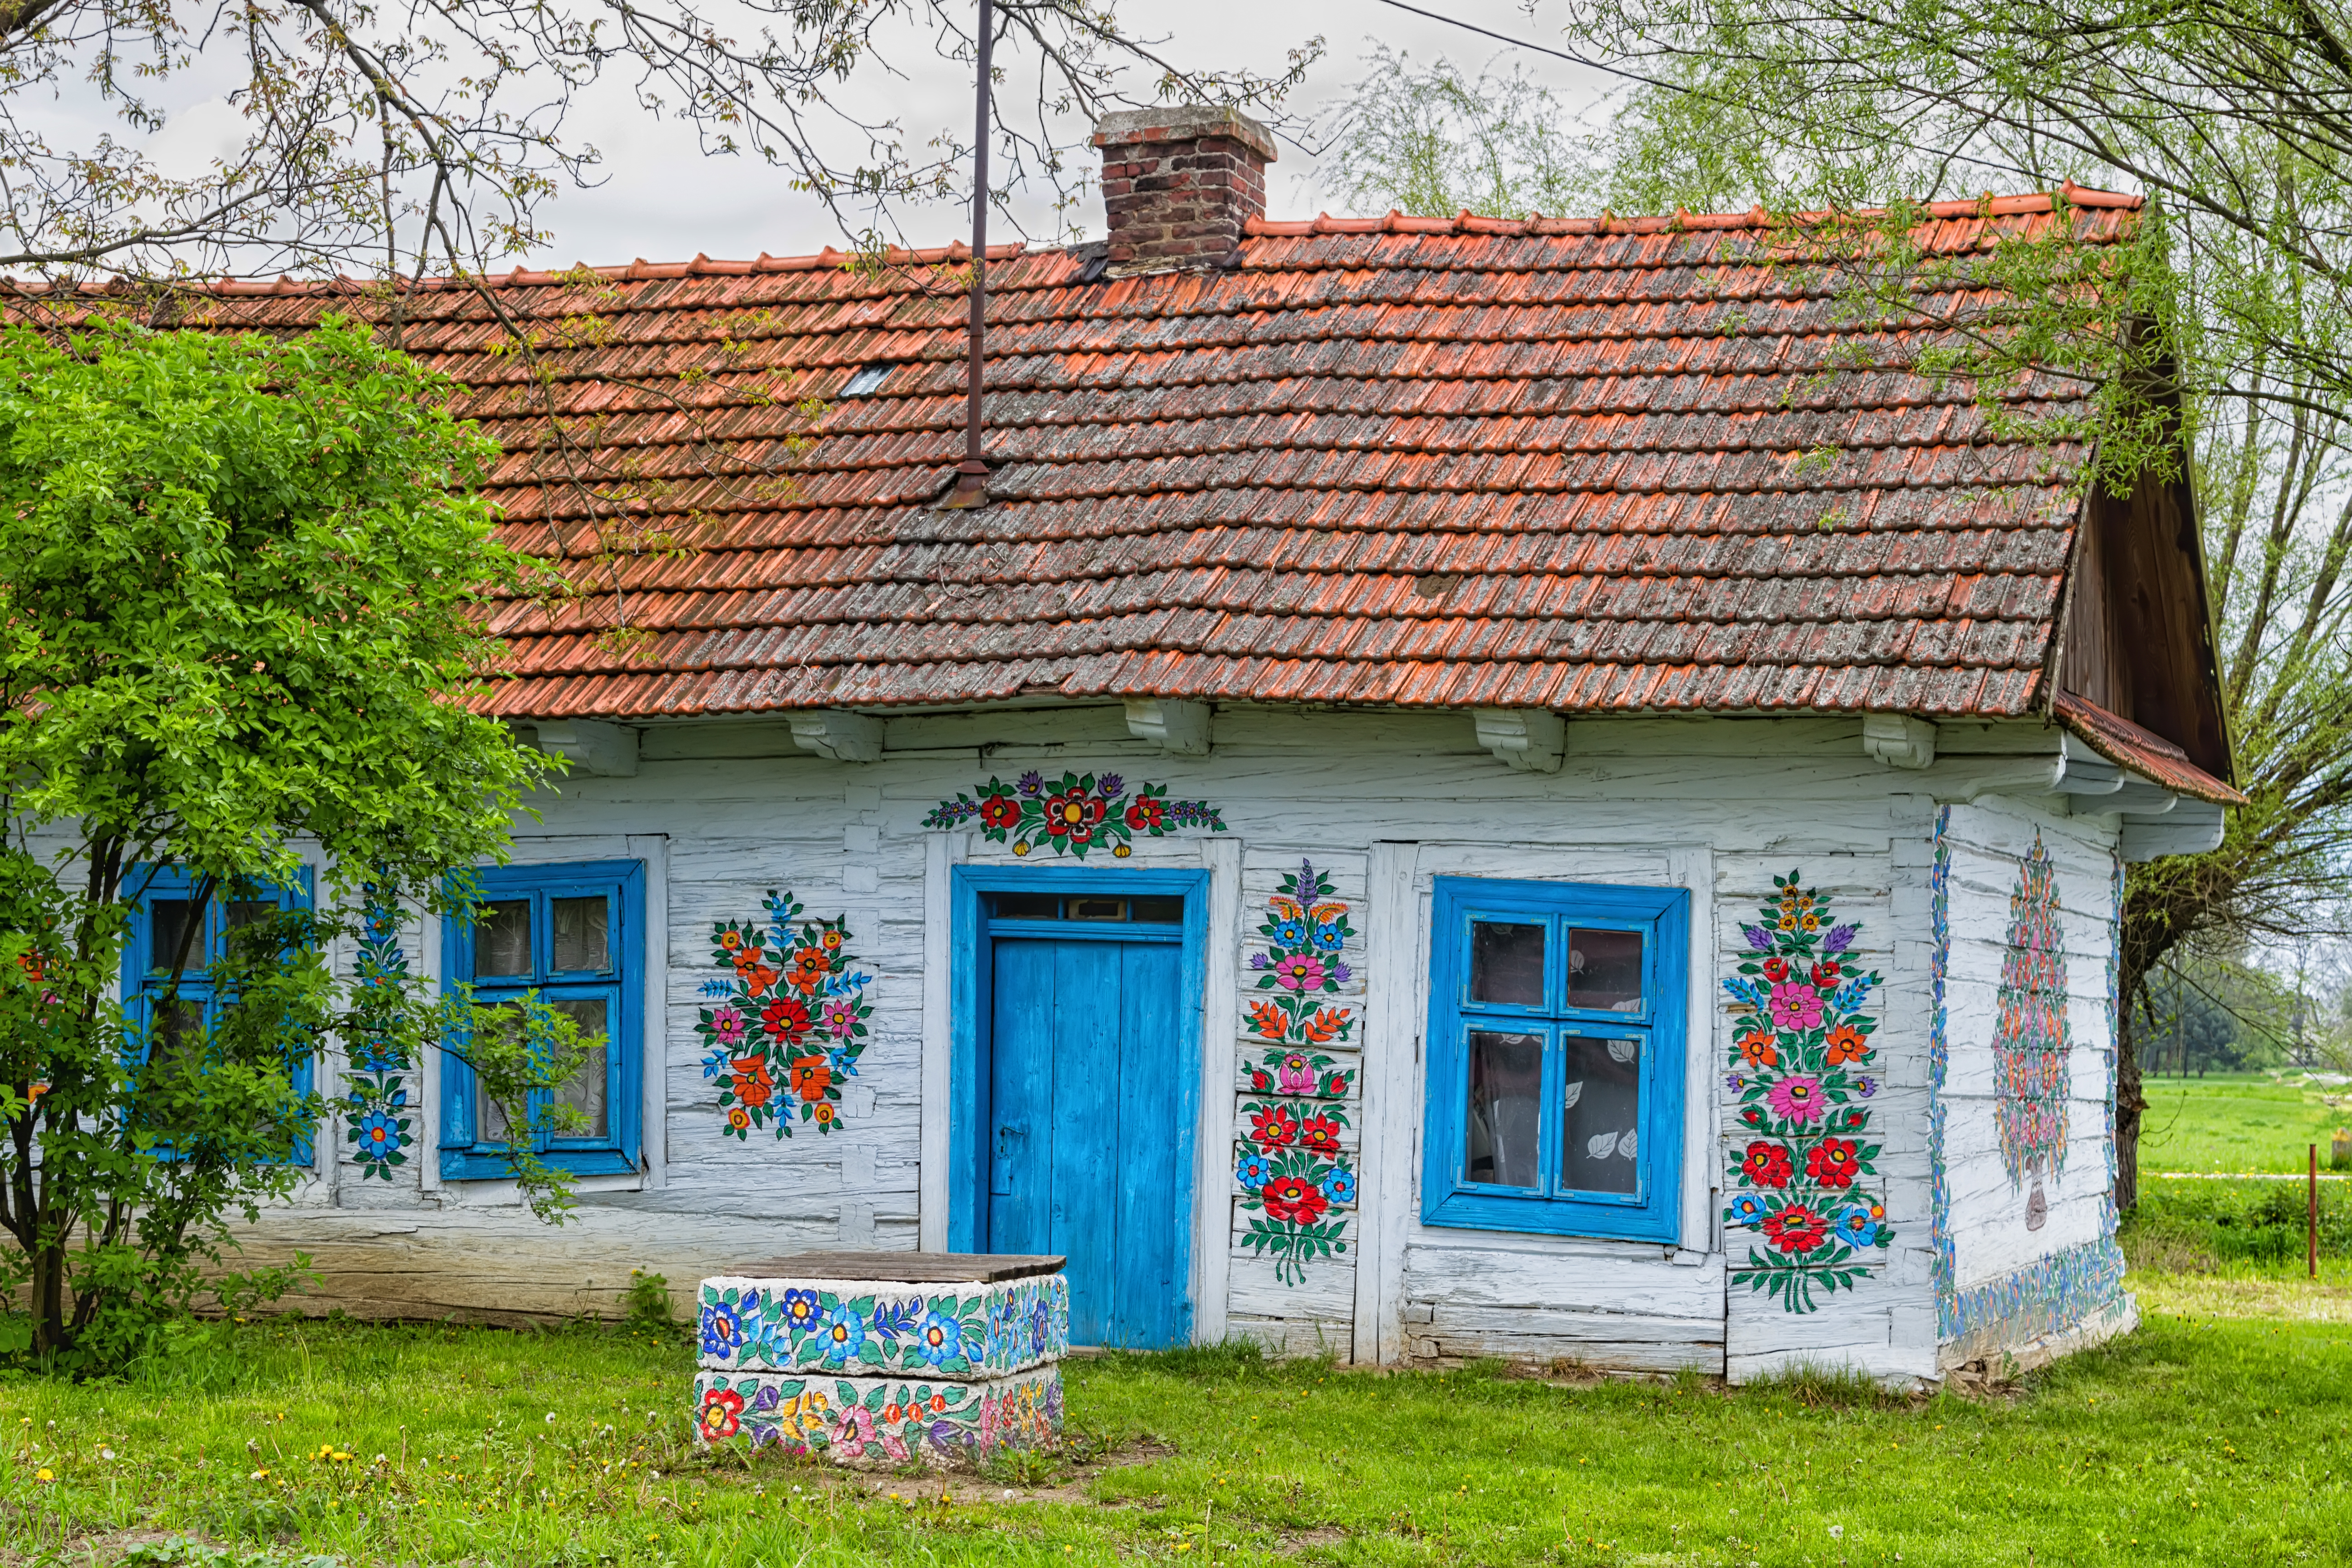 This tiny Polish village might be the most Instagrammable spot in Europe